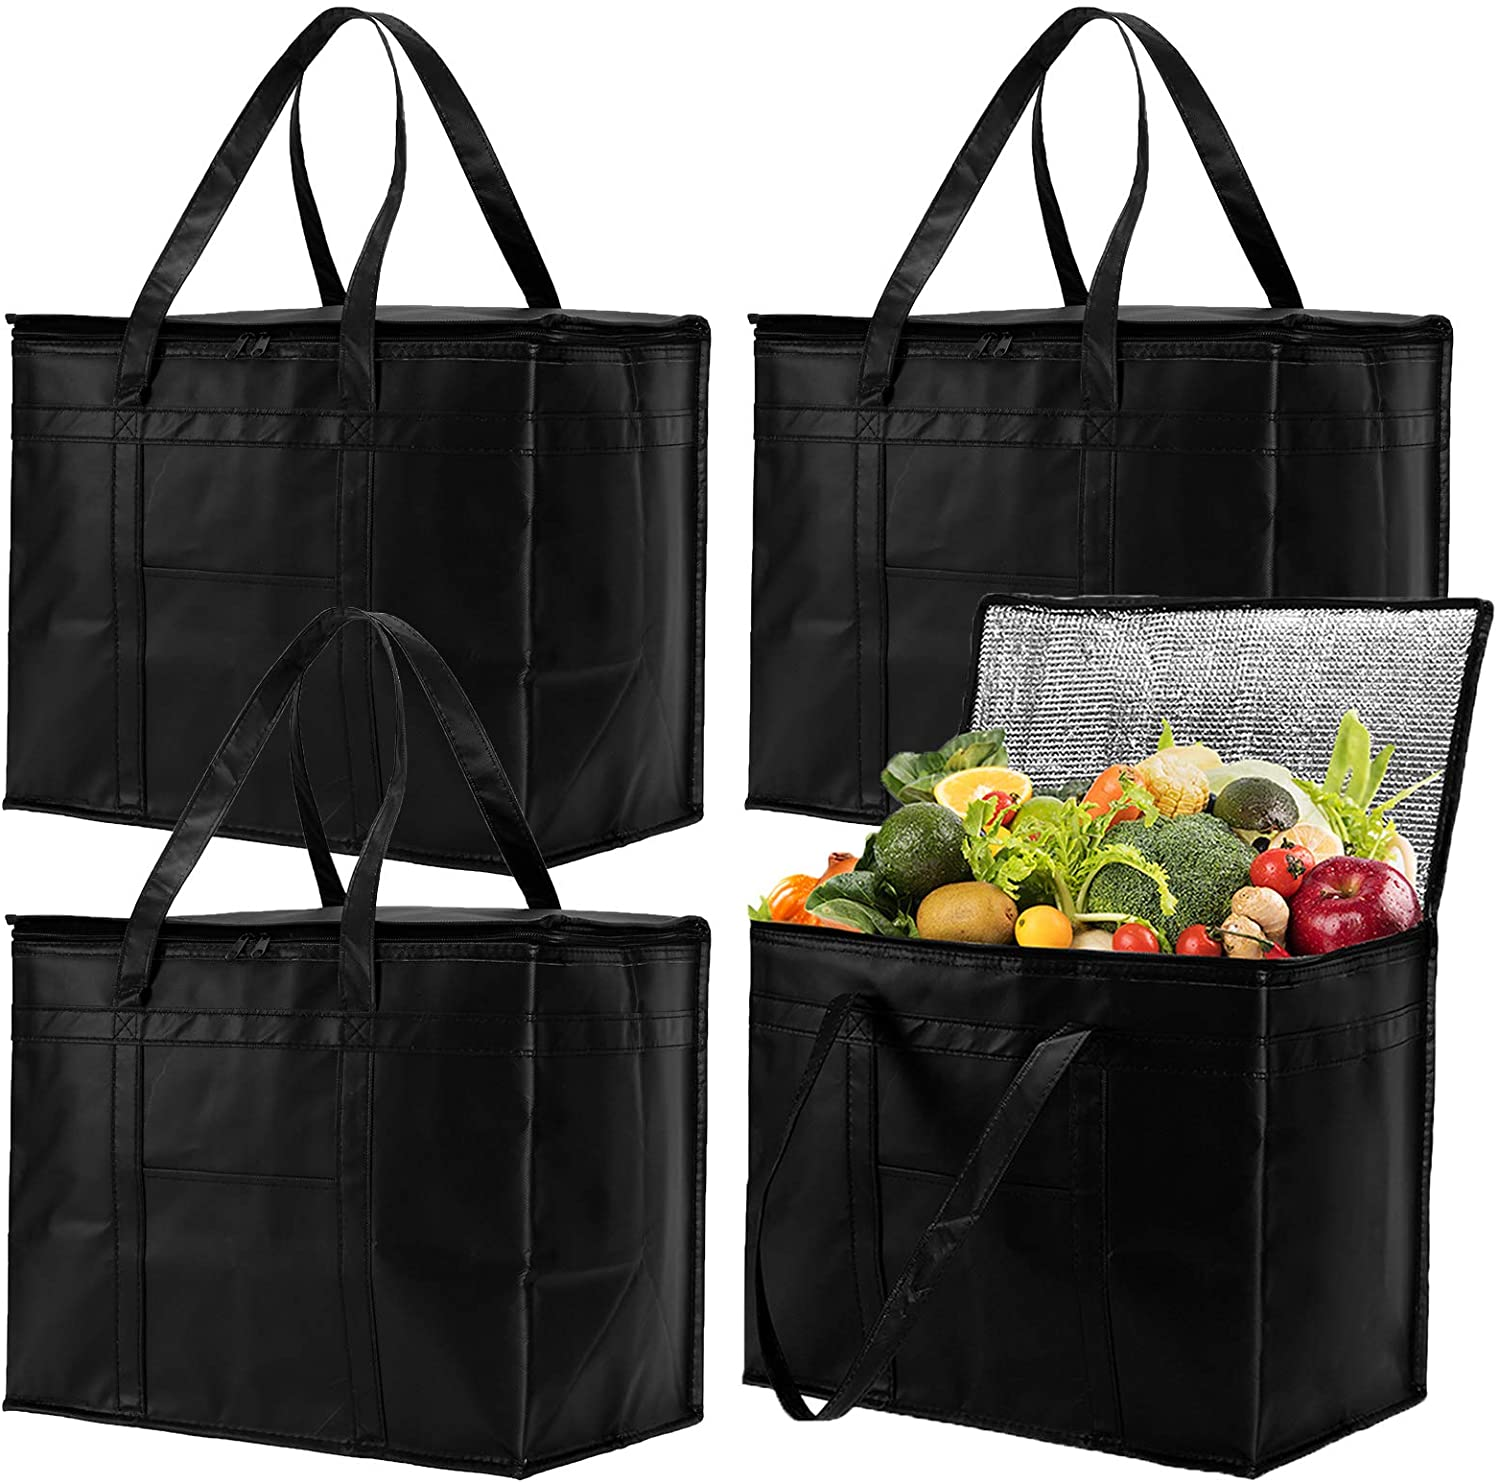 Bekith 4 Pack XL Insulated Reusable Grocery Bags with Zippered Top, Insulated Shopping Bag for Groceries or Food Delivery, Foldable, Washable, Heavy Duty, Stands Upright, Reinforced Bottom, Black